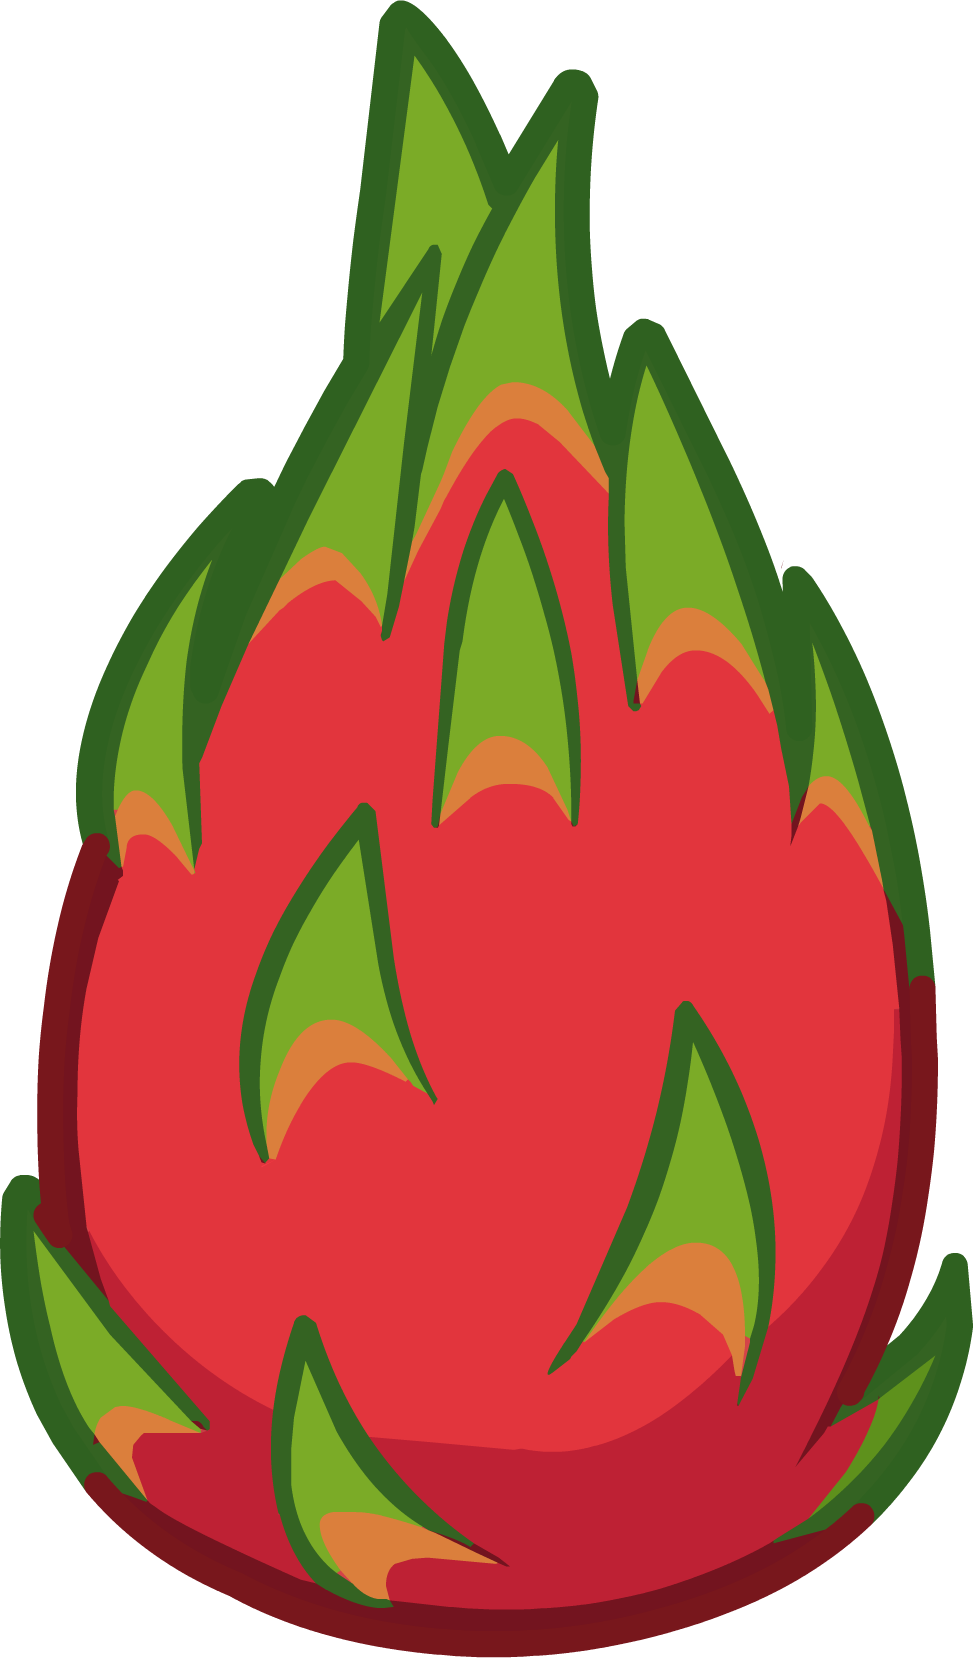 Passion flower clipart clip royalty free download Pitaya Fruit Clip art - passion fruit 973*1658 transprent Png Free ... clip royalty free download